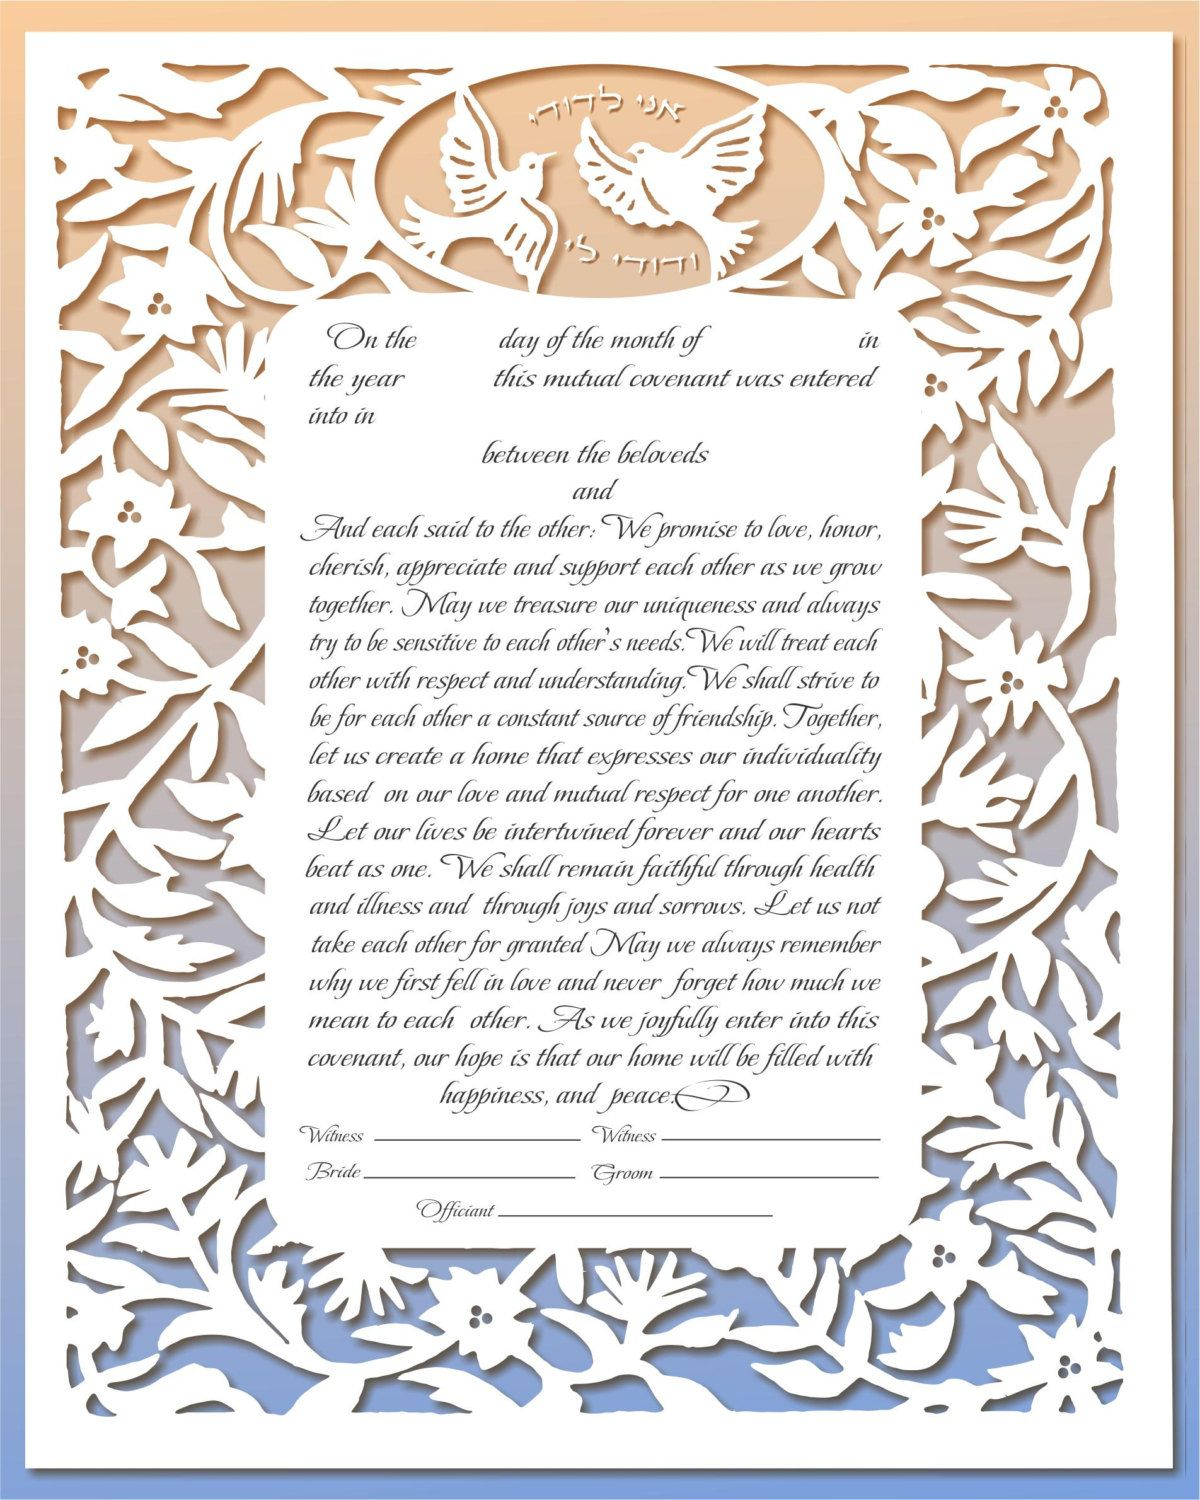 Ketubah Marriage Contract Endless Devotion With Doves Simulated